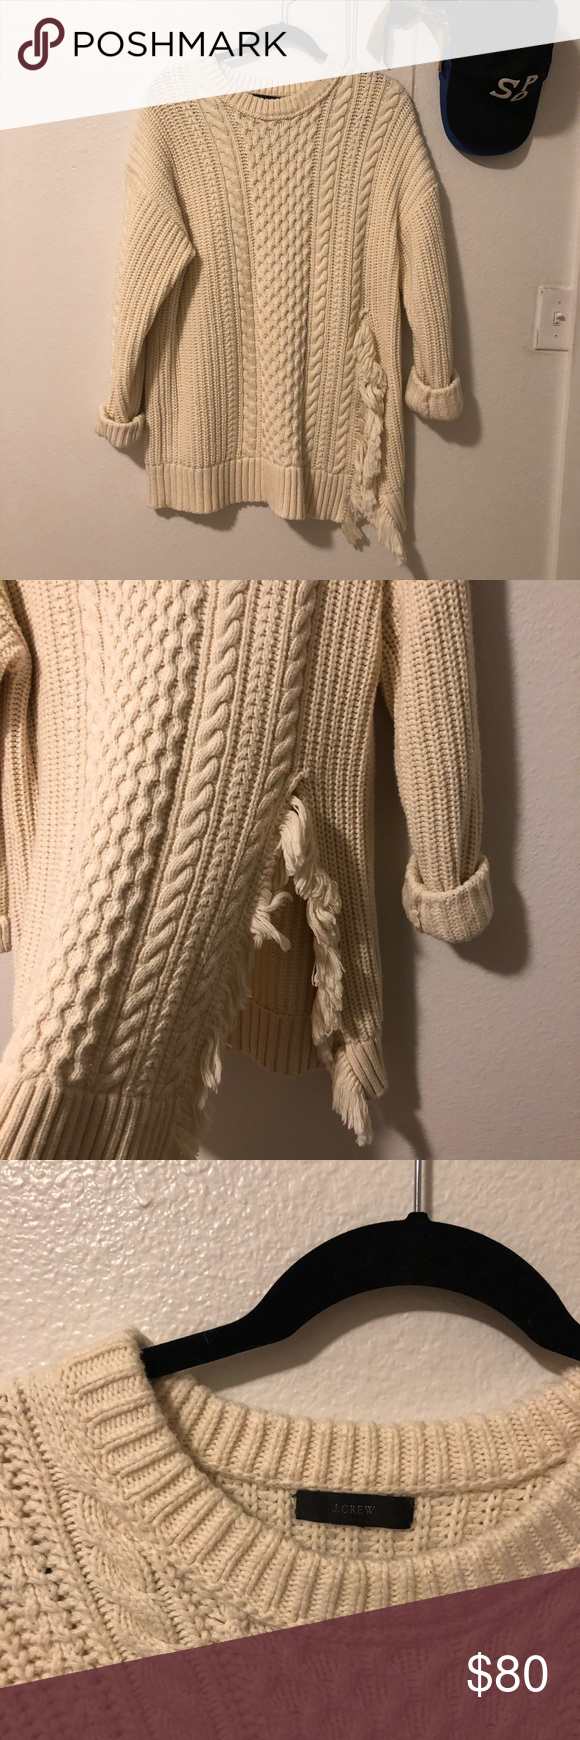 72ee23a6f25ab0 J.Crew Cable Knit Sweater with Fringe Slightly oversized cable knit with  fringe split on